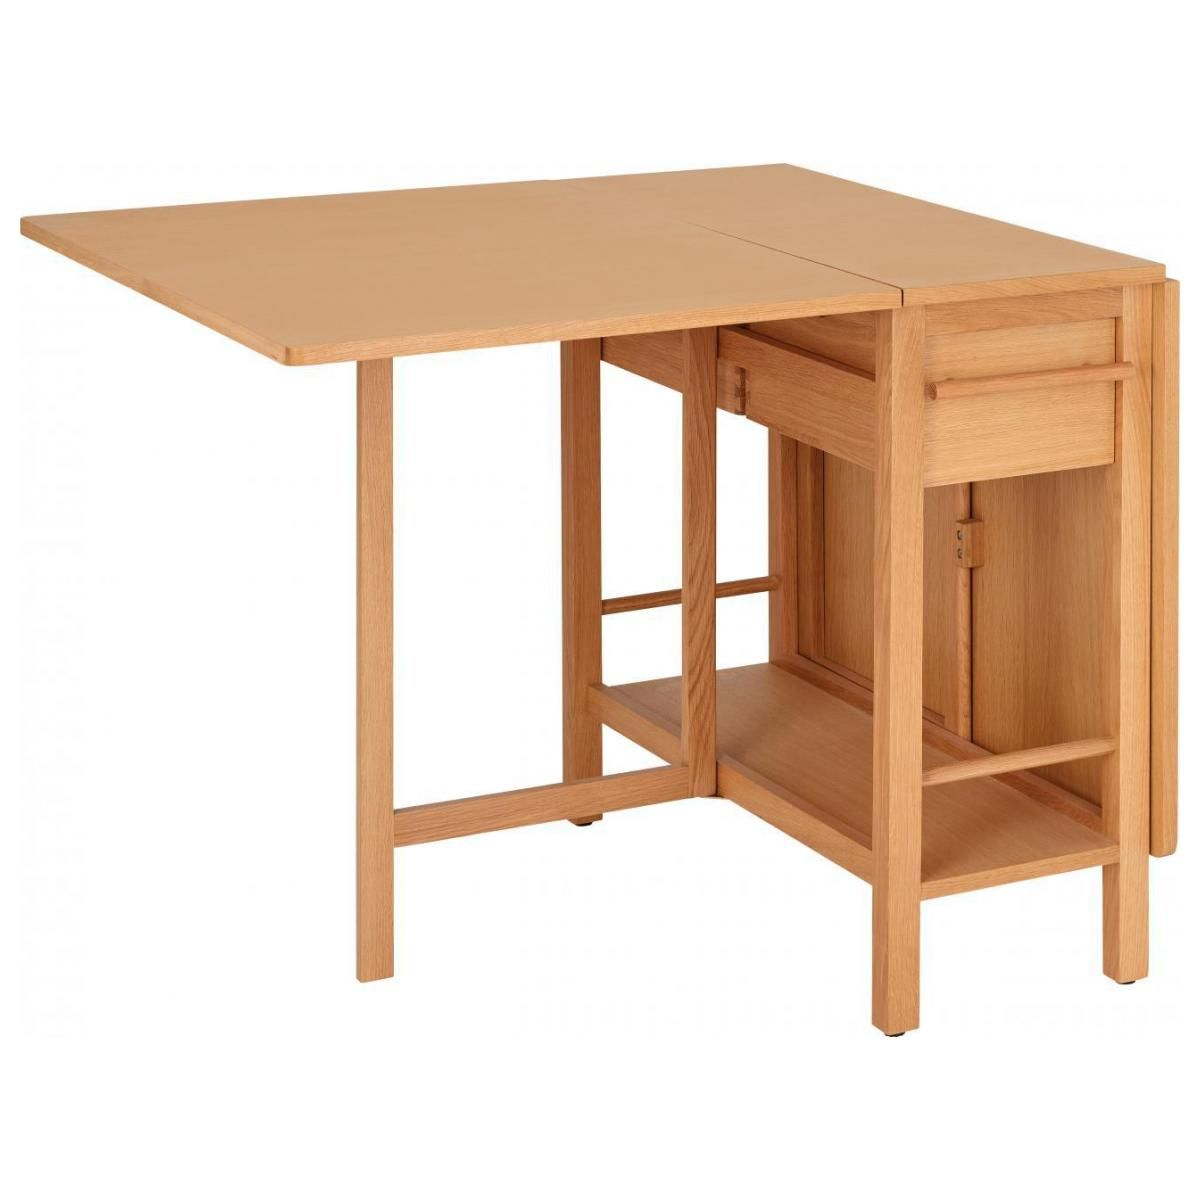 Malen Table Rabattable En Chene En 2020 Table Rabattable Table Salle A Manger Table